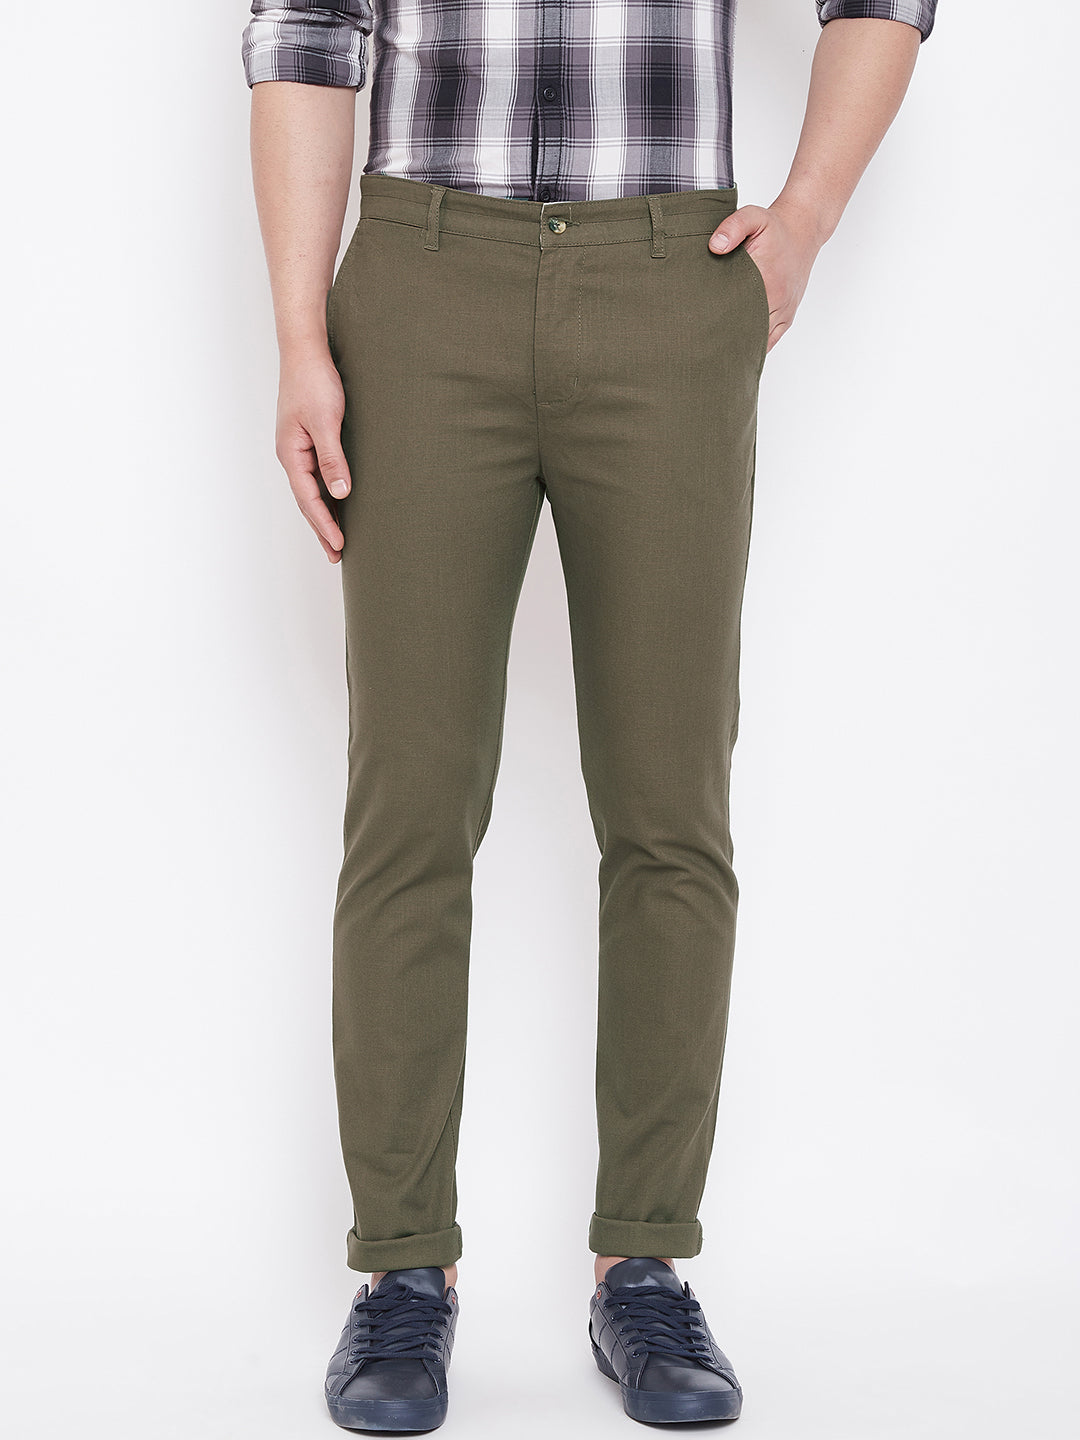 JUMP USA Men Olive Casual Slim Fit Trousers - JUMP USA